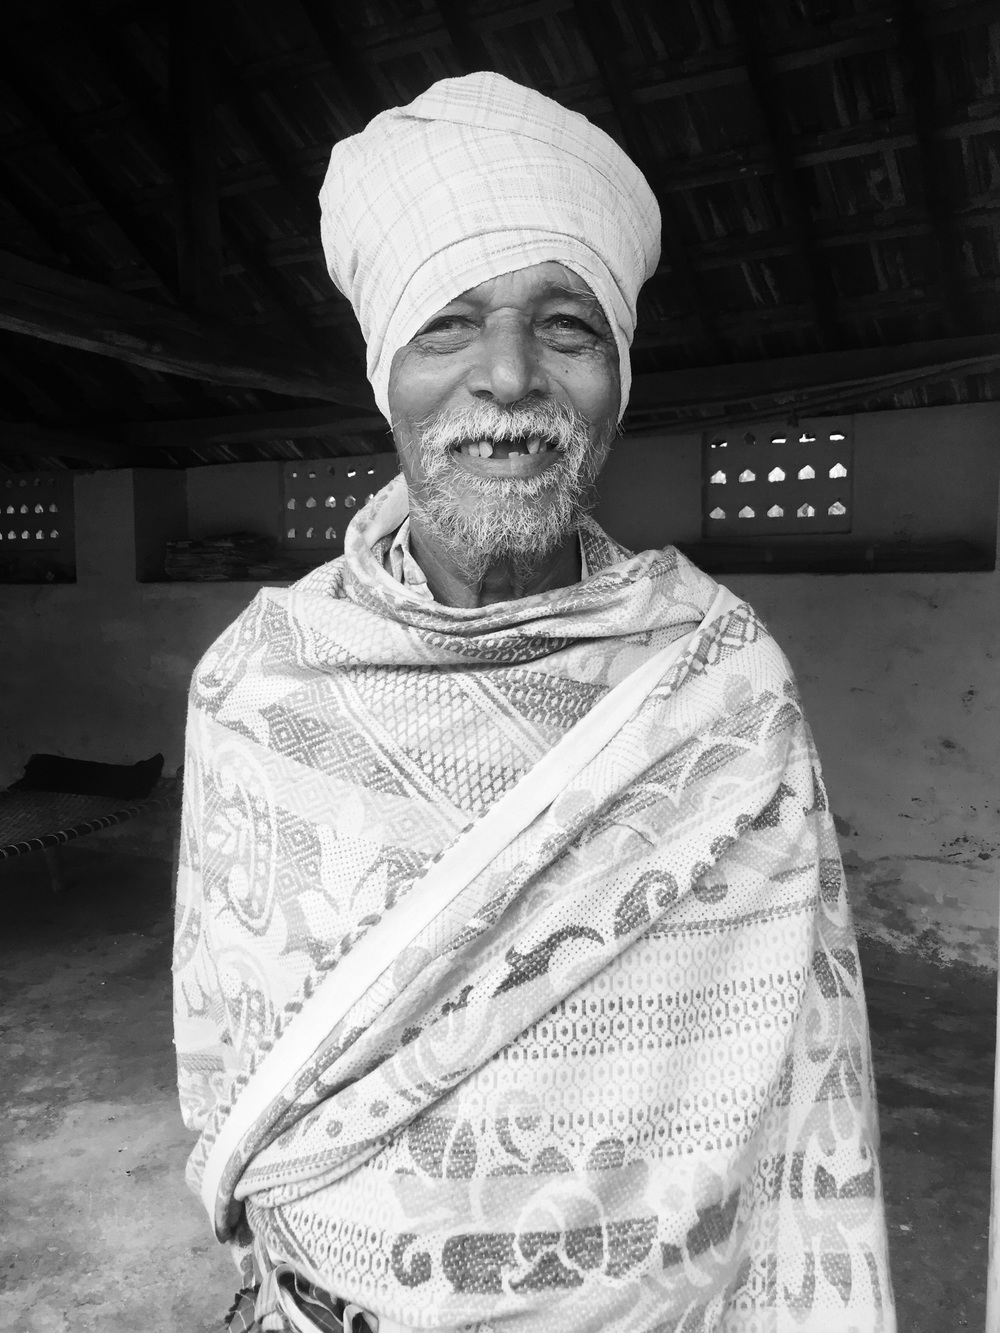 Nallasamy - 73 Year Old Farmer